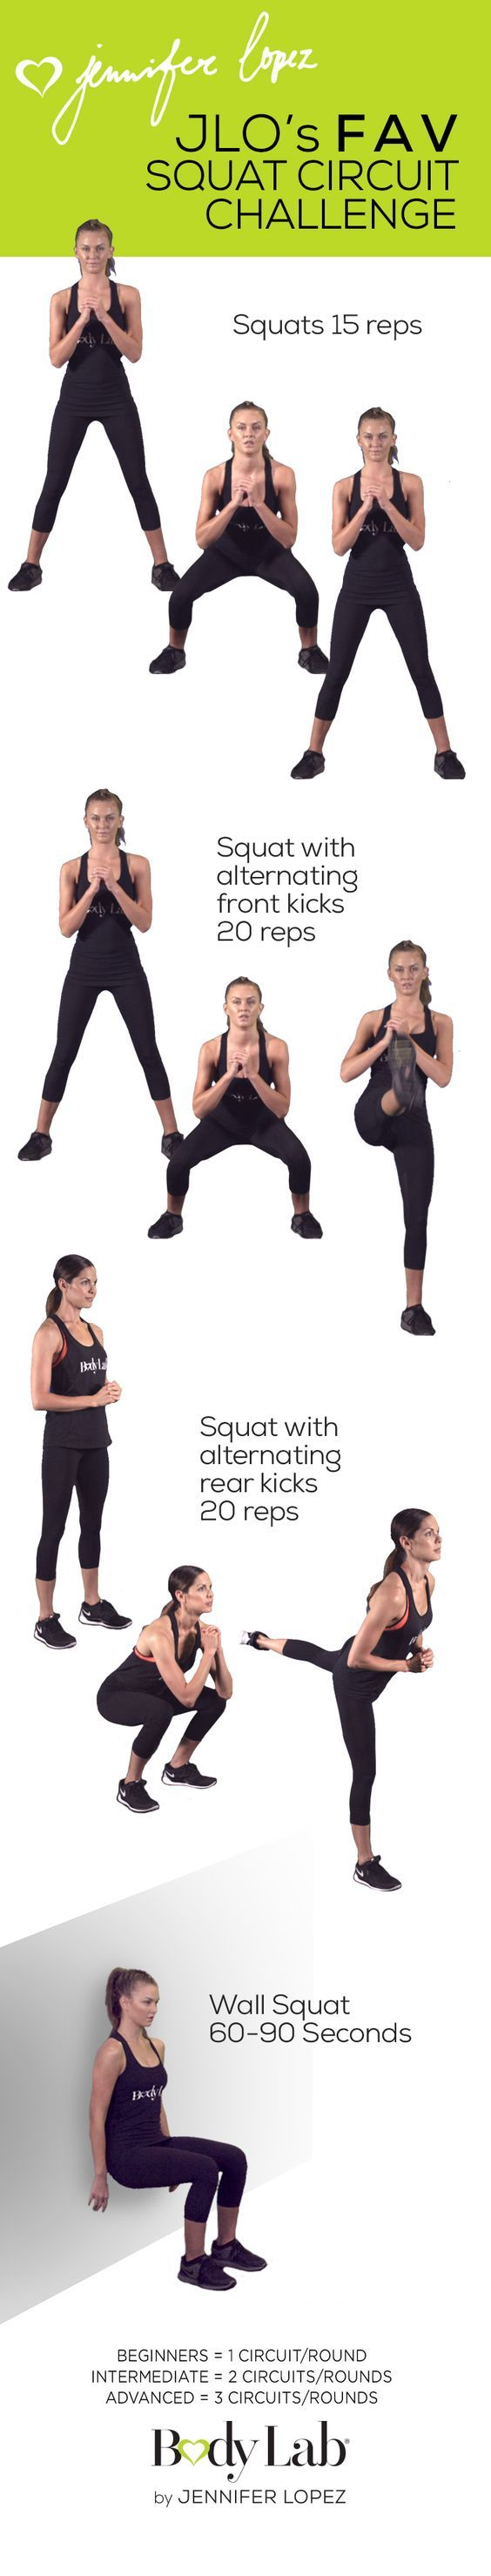 We know you want in on Jennifer Lopezs favorite workouts-We know you want in on Jennifer Lopez's favorite workouts. Check out her favorite Squat Circuit Challenge! http://www.4myprosperity.com/the-2-week-diet-program/